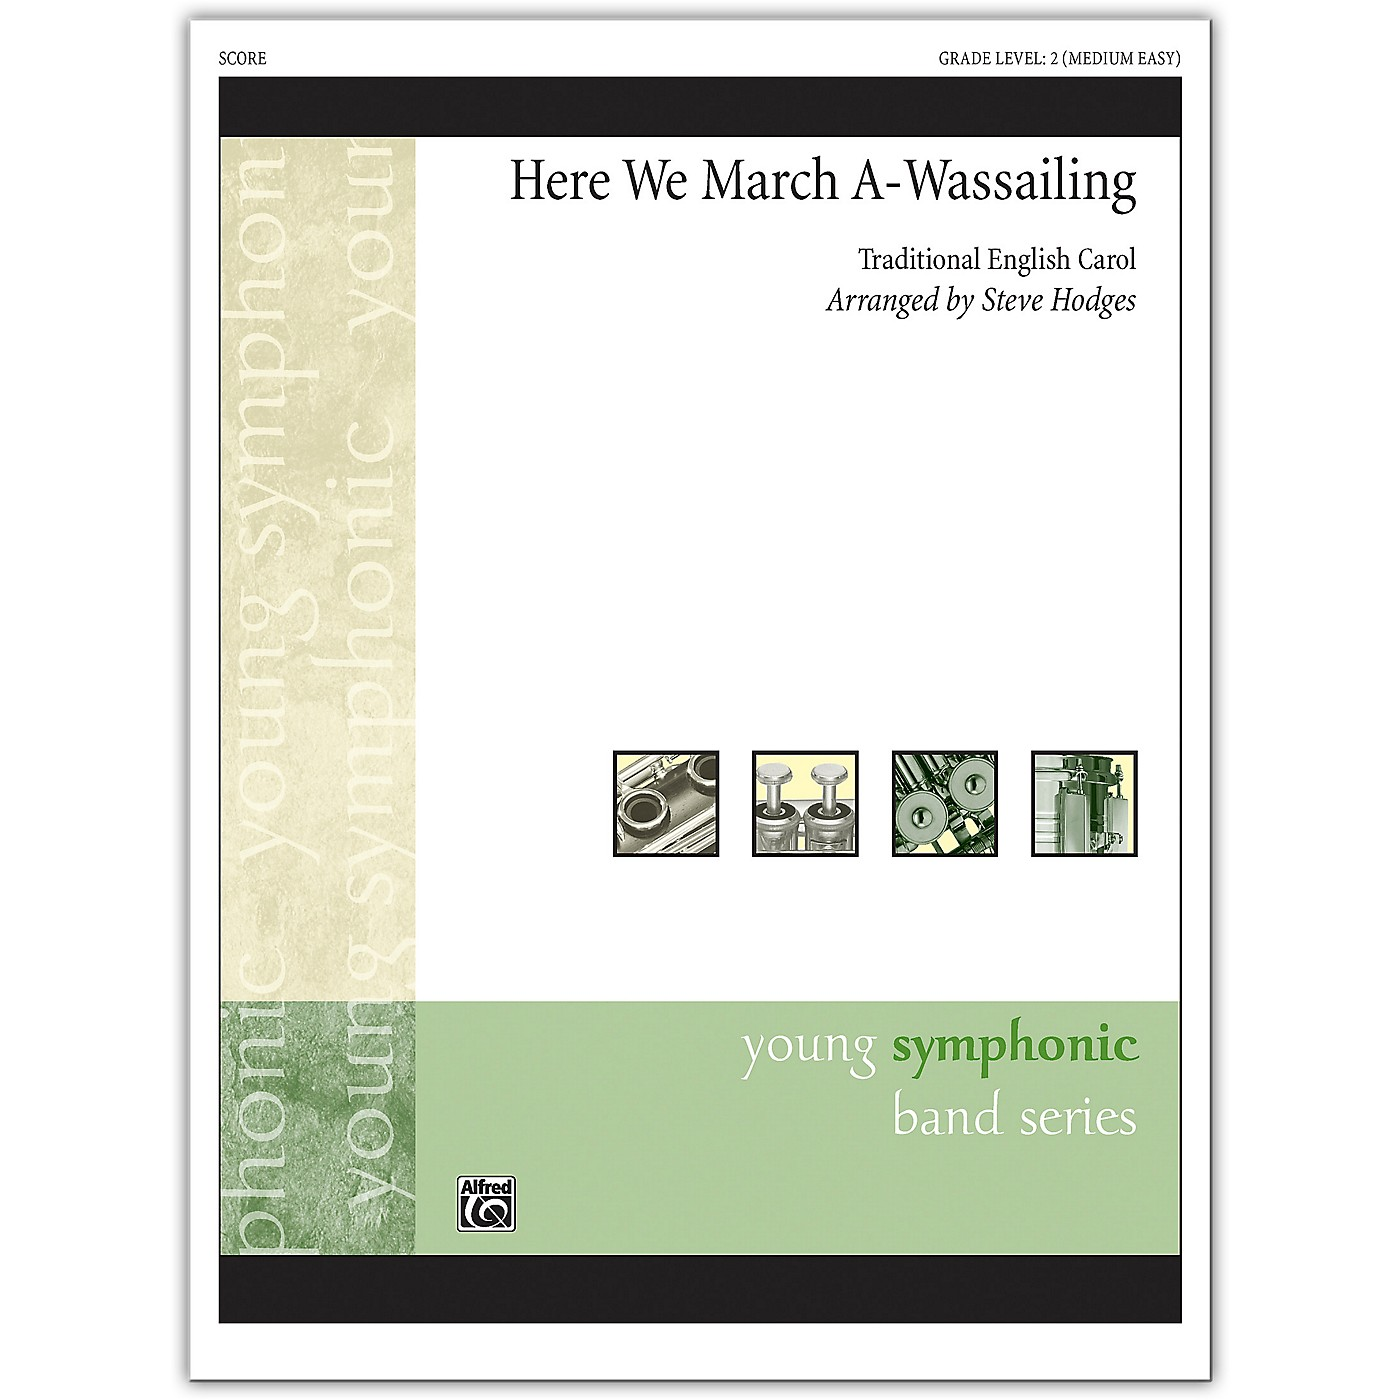 Alfred Here We March A-Wassailing Conductor Score 2 (Medium Easy) thumbnail